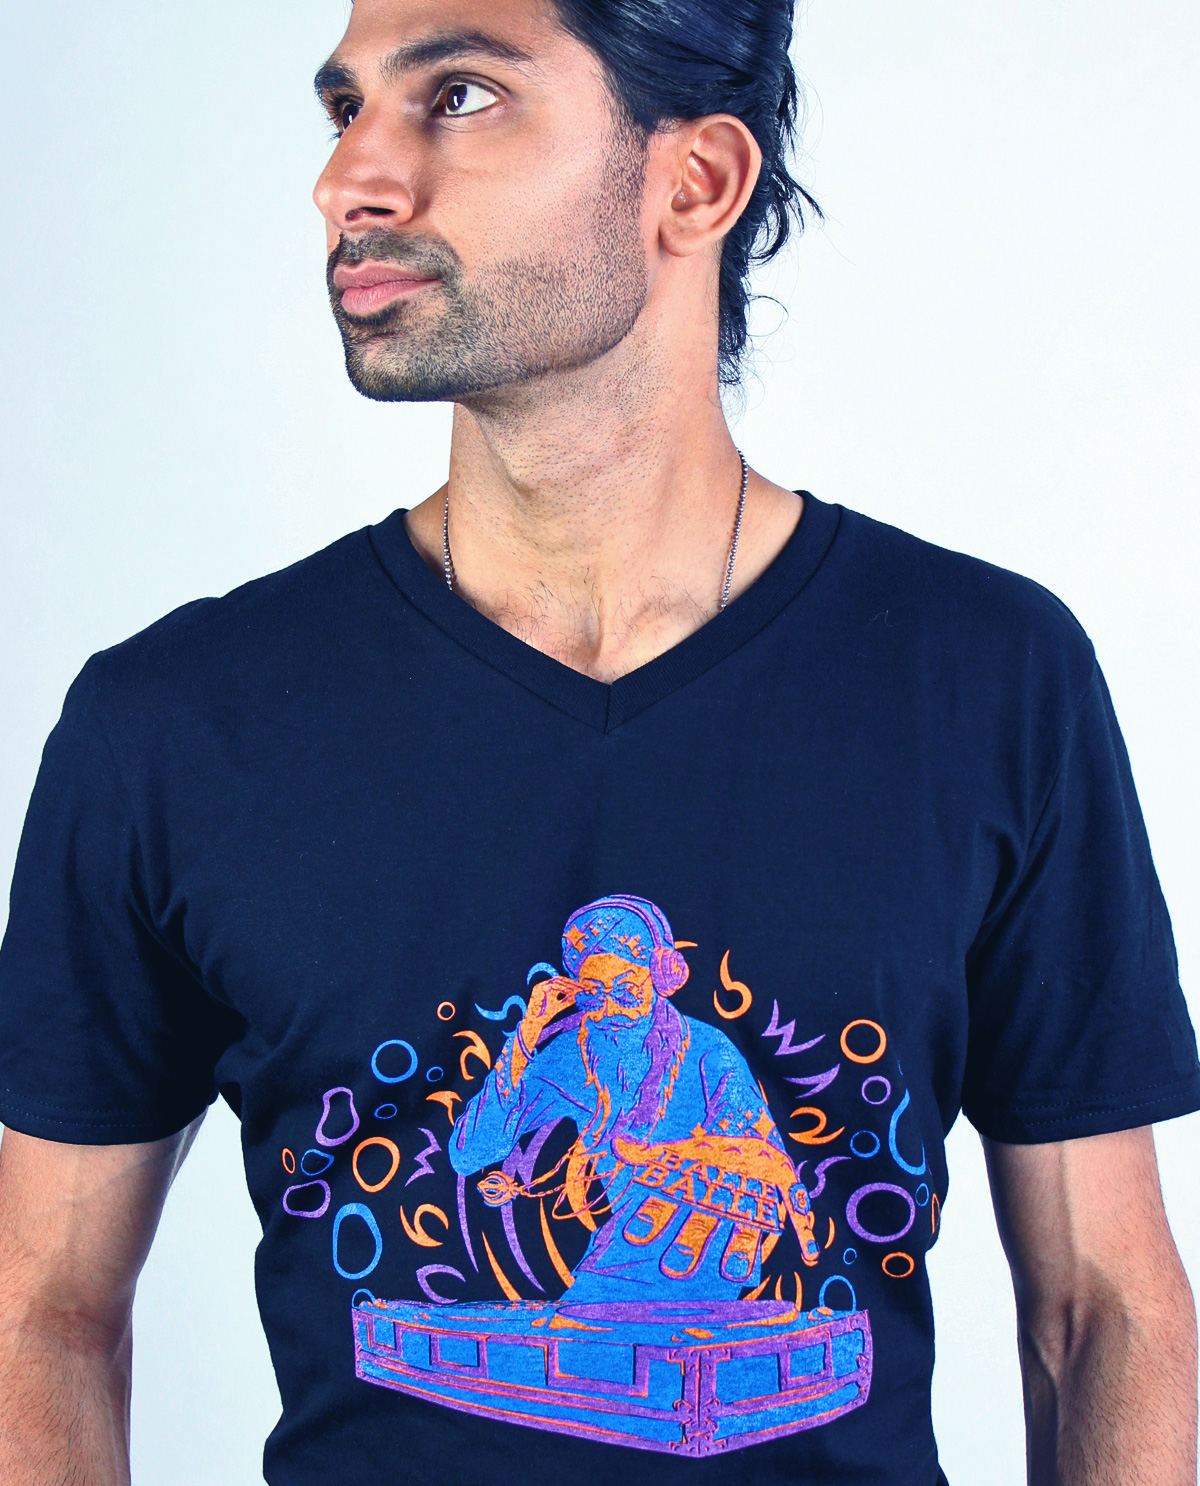 South Asian Male Model wearing full colour graphic design tshirt on black v neck fitted t-shirt by Brown Man Clothing Co.